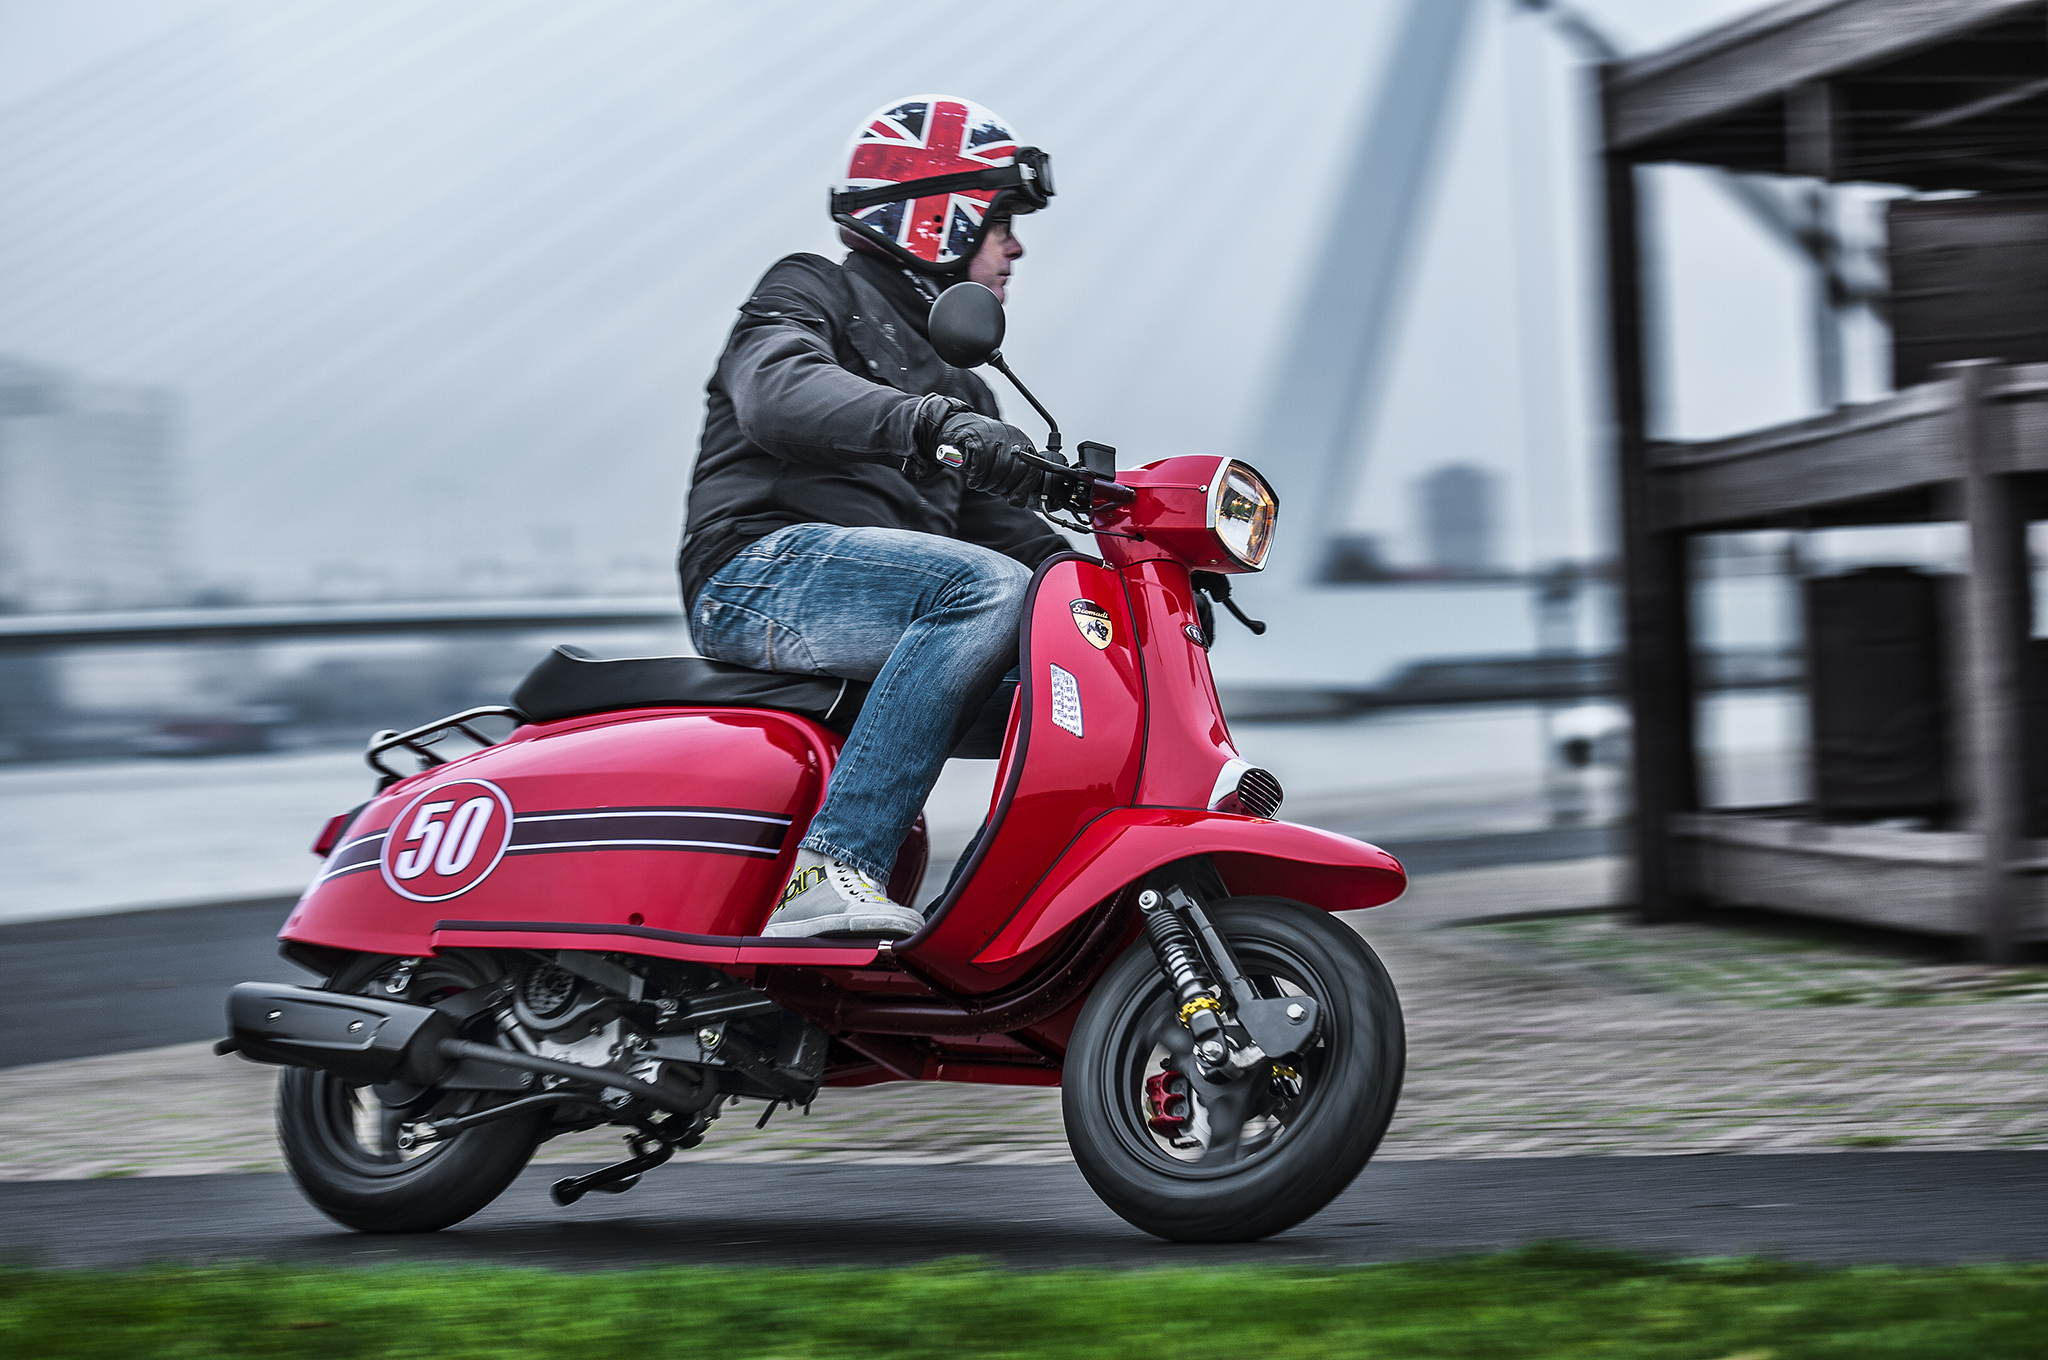 Dutch Big Scoots en Scomadi